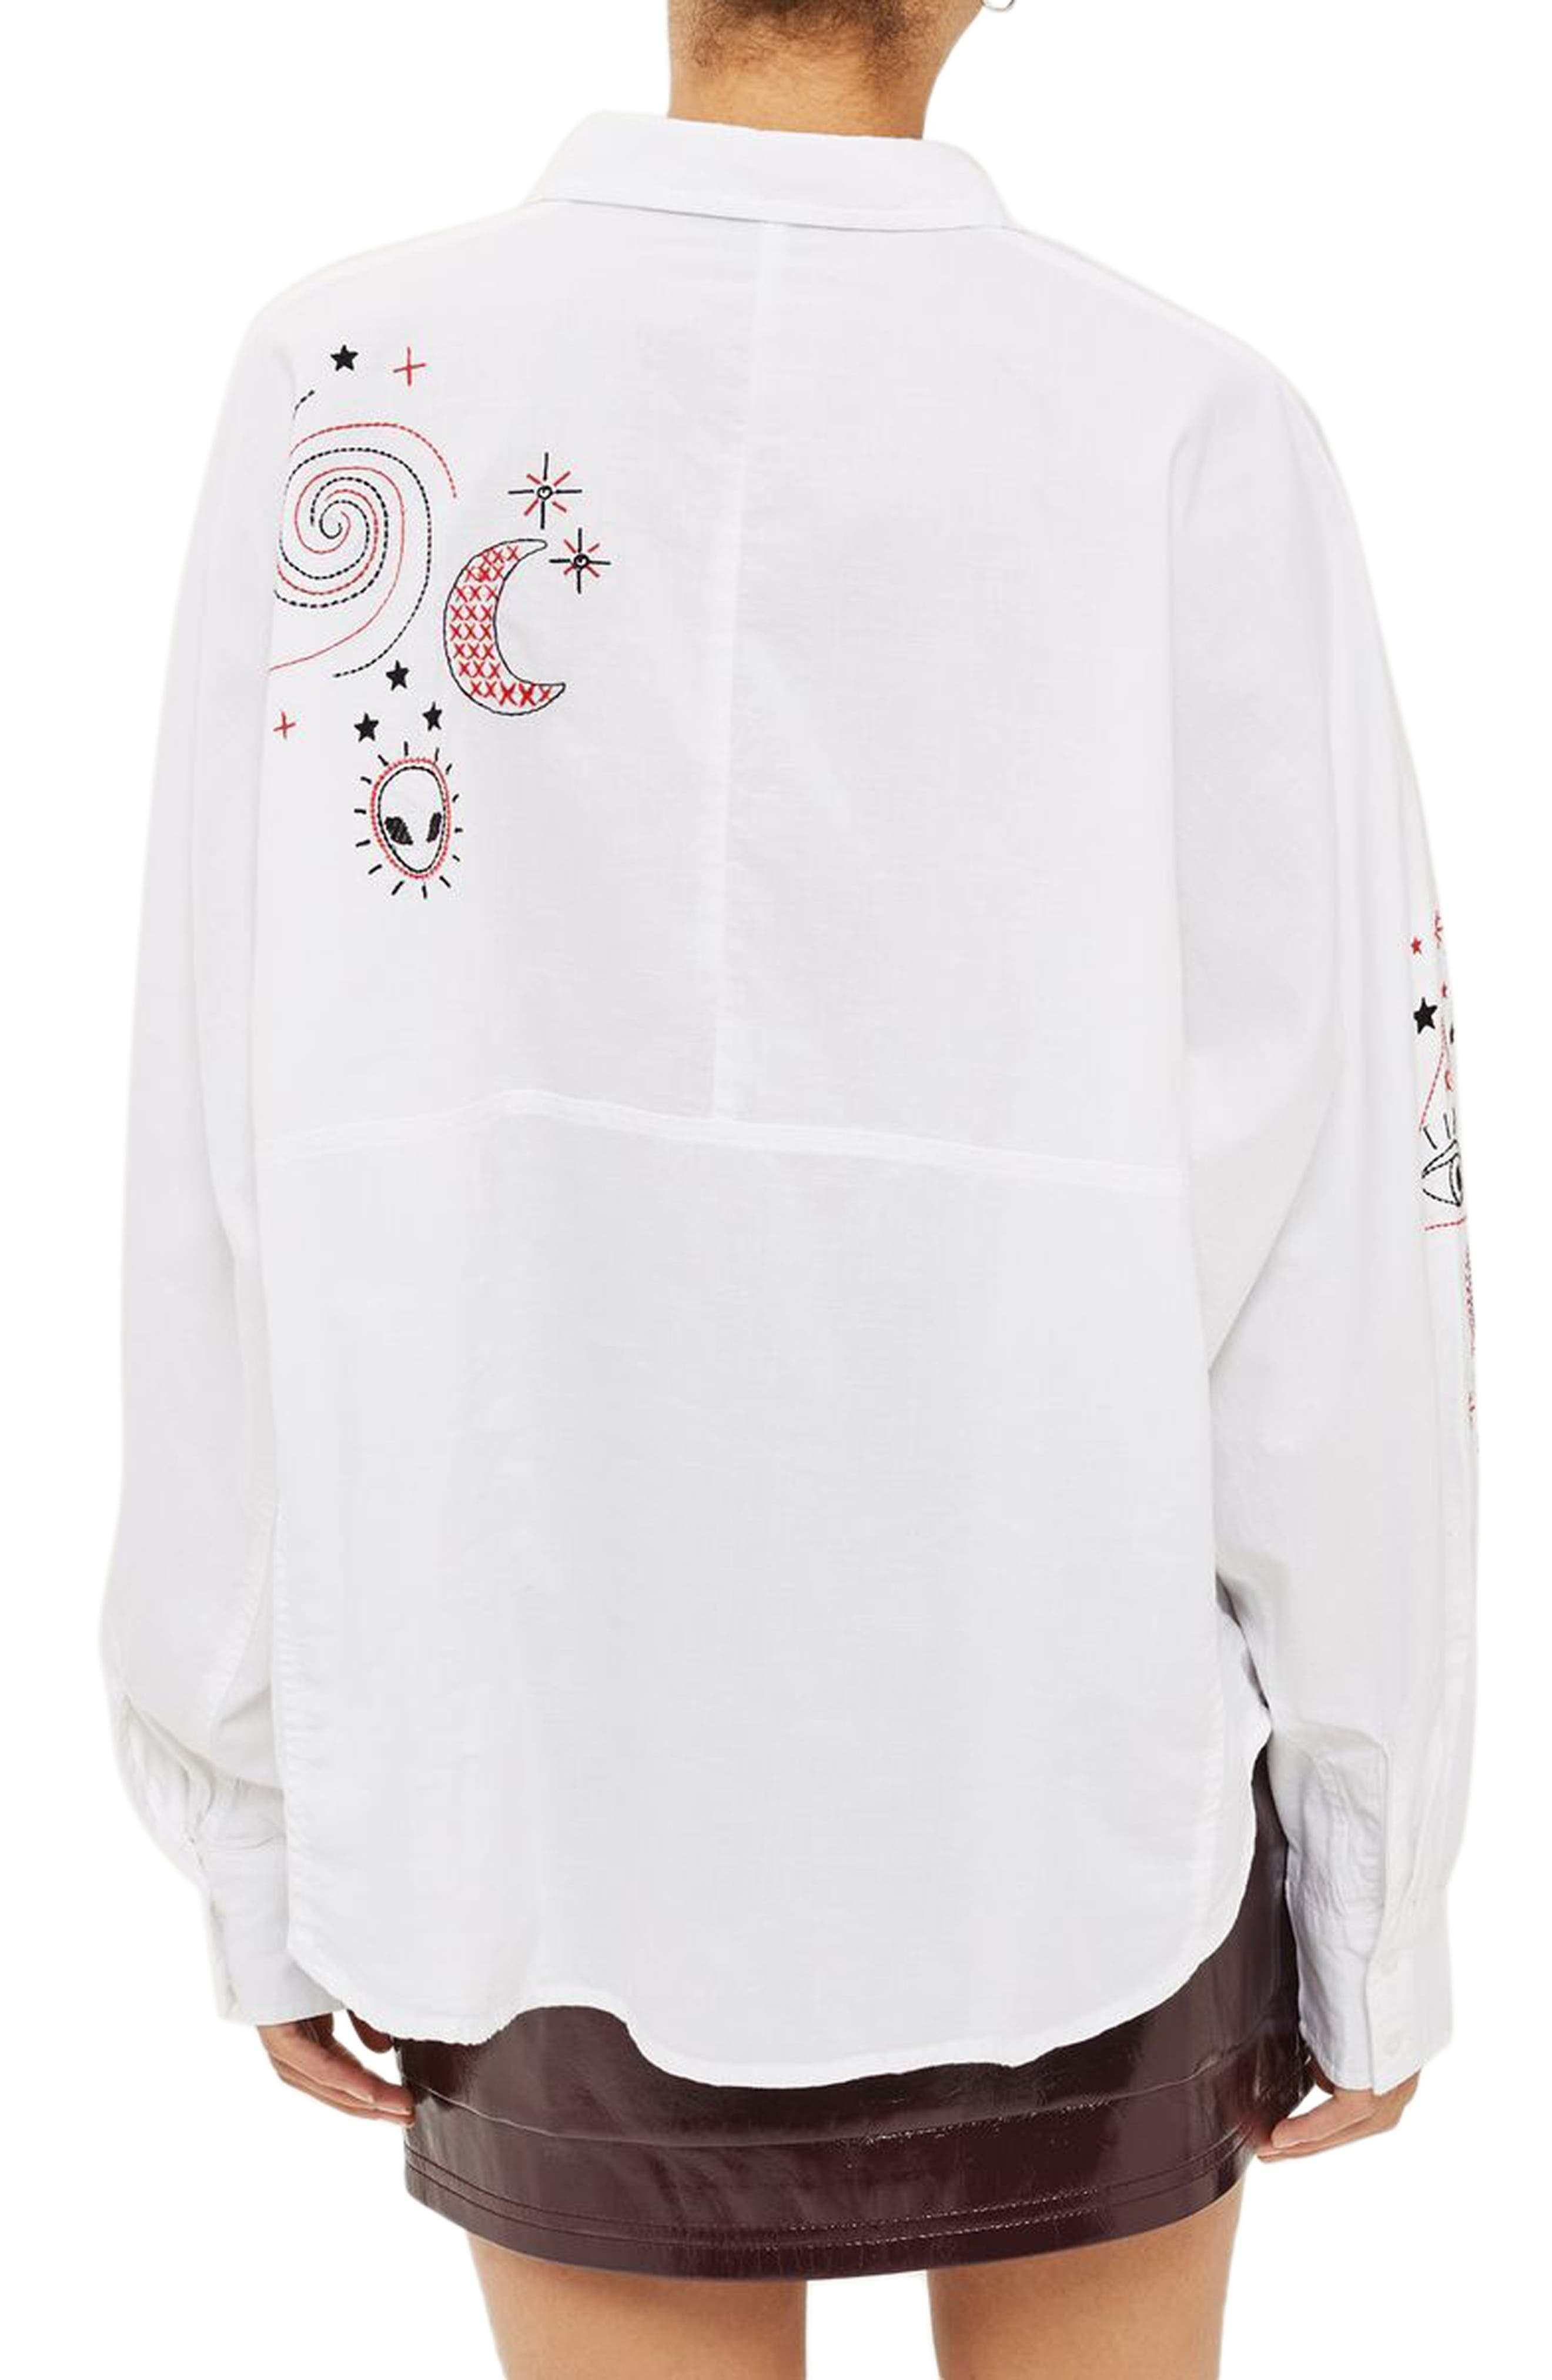 Doodle Believer Embroidered Shirt,                             Alternate thumbnail 2, color,                             900